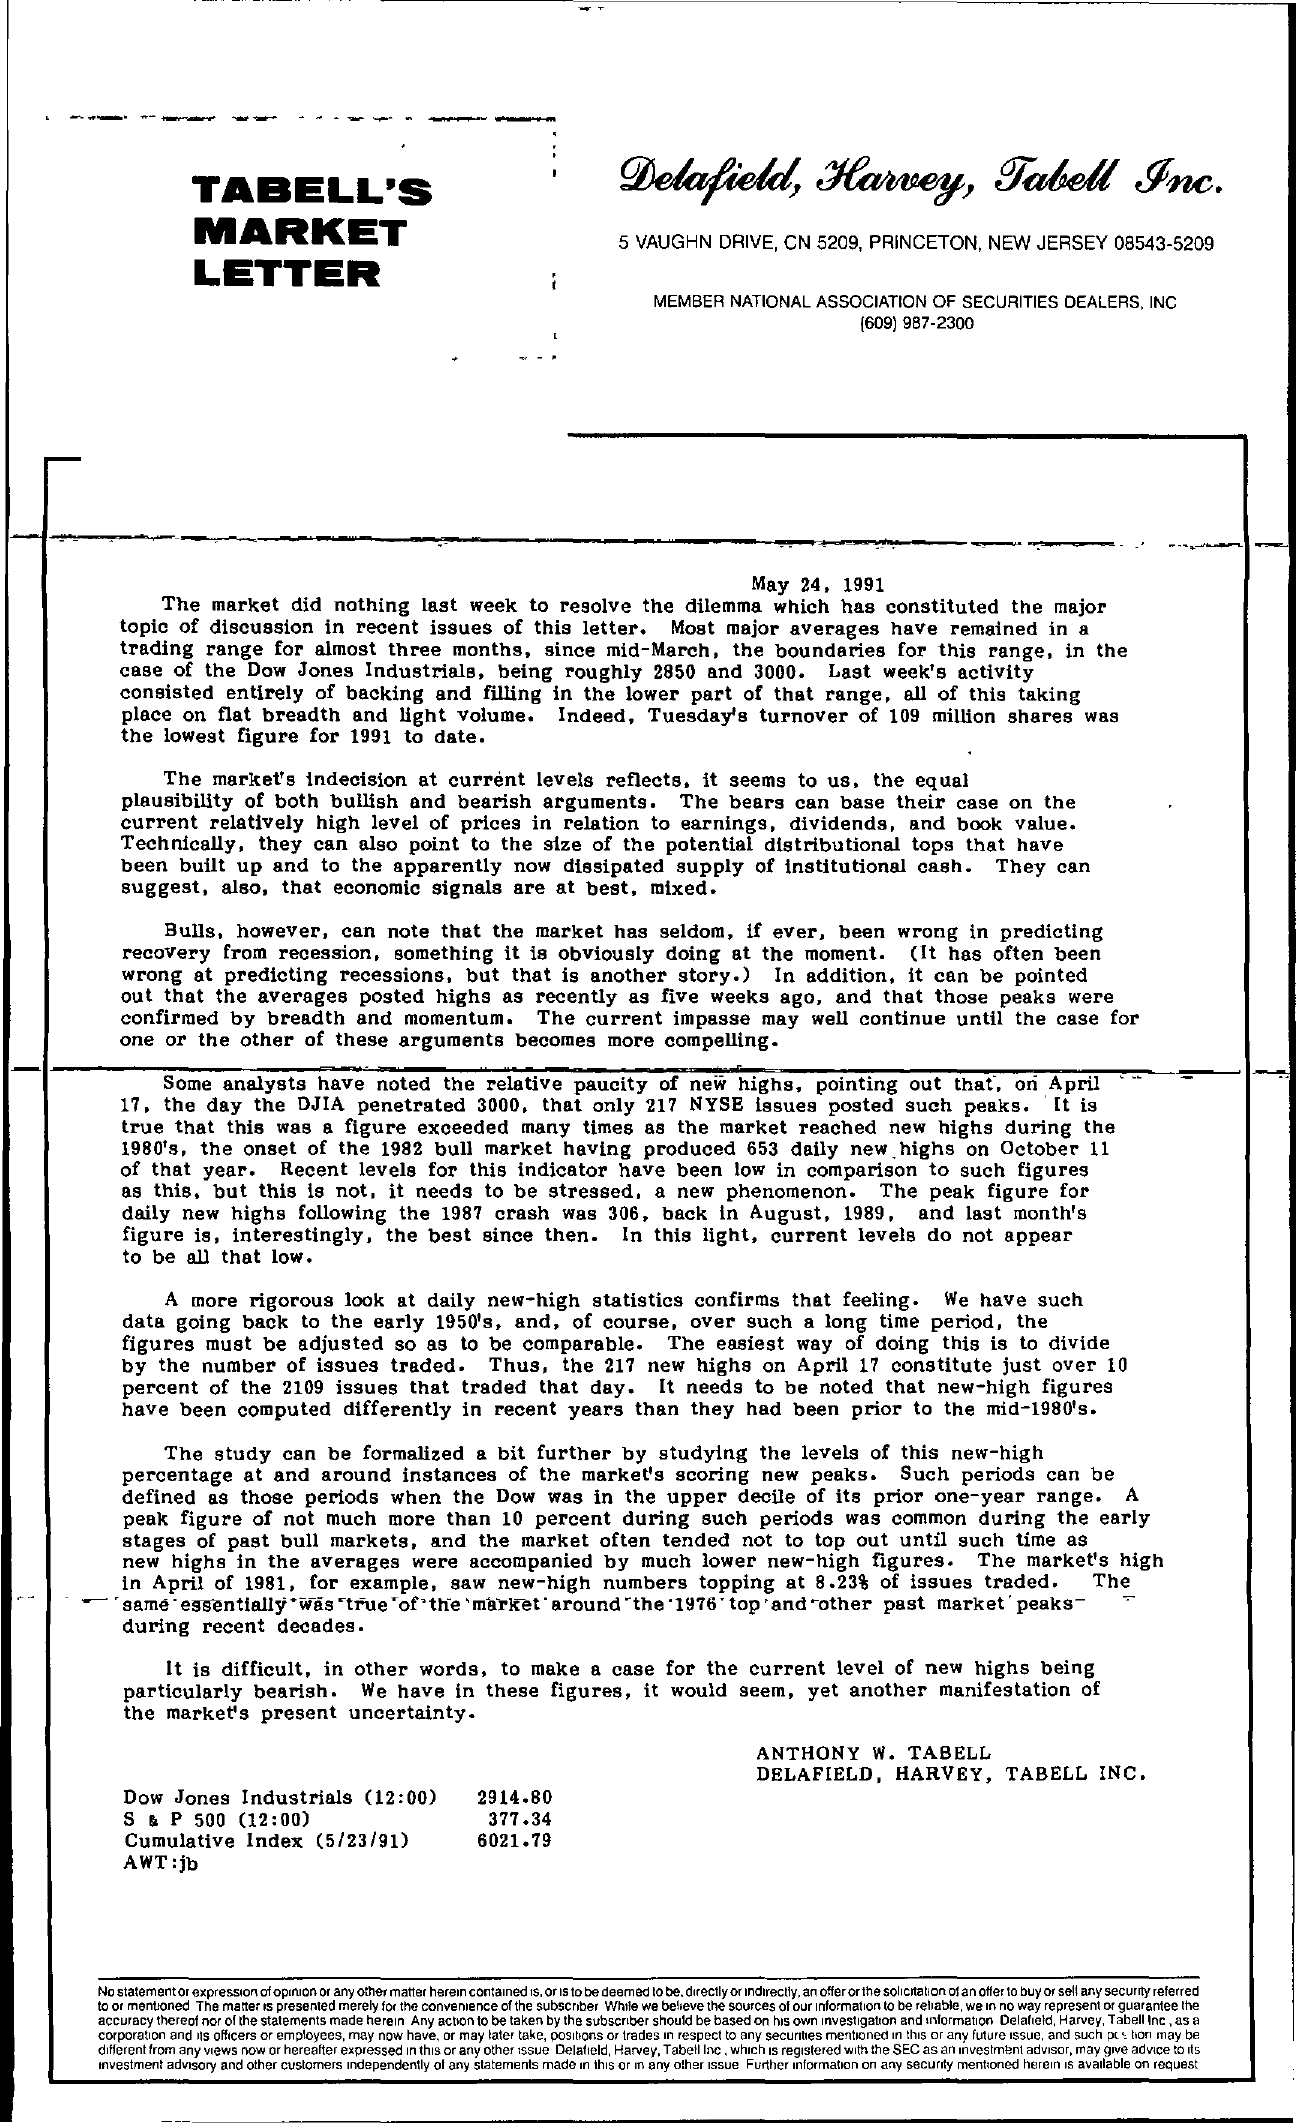 Tabell's Market Letter - May 24, 1991